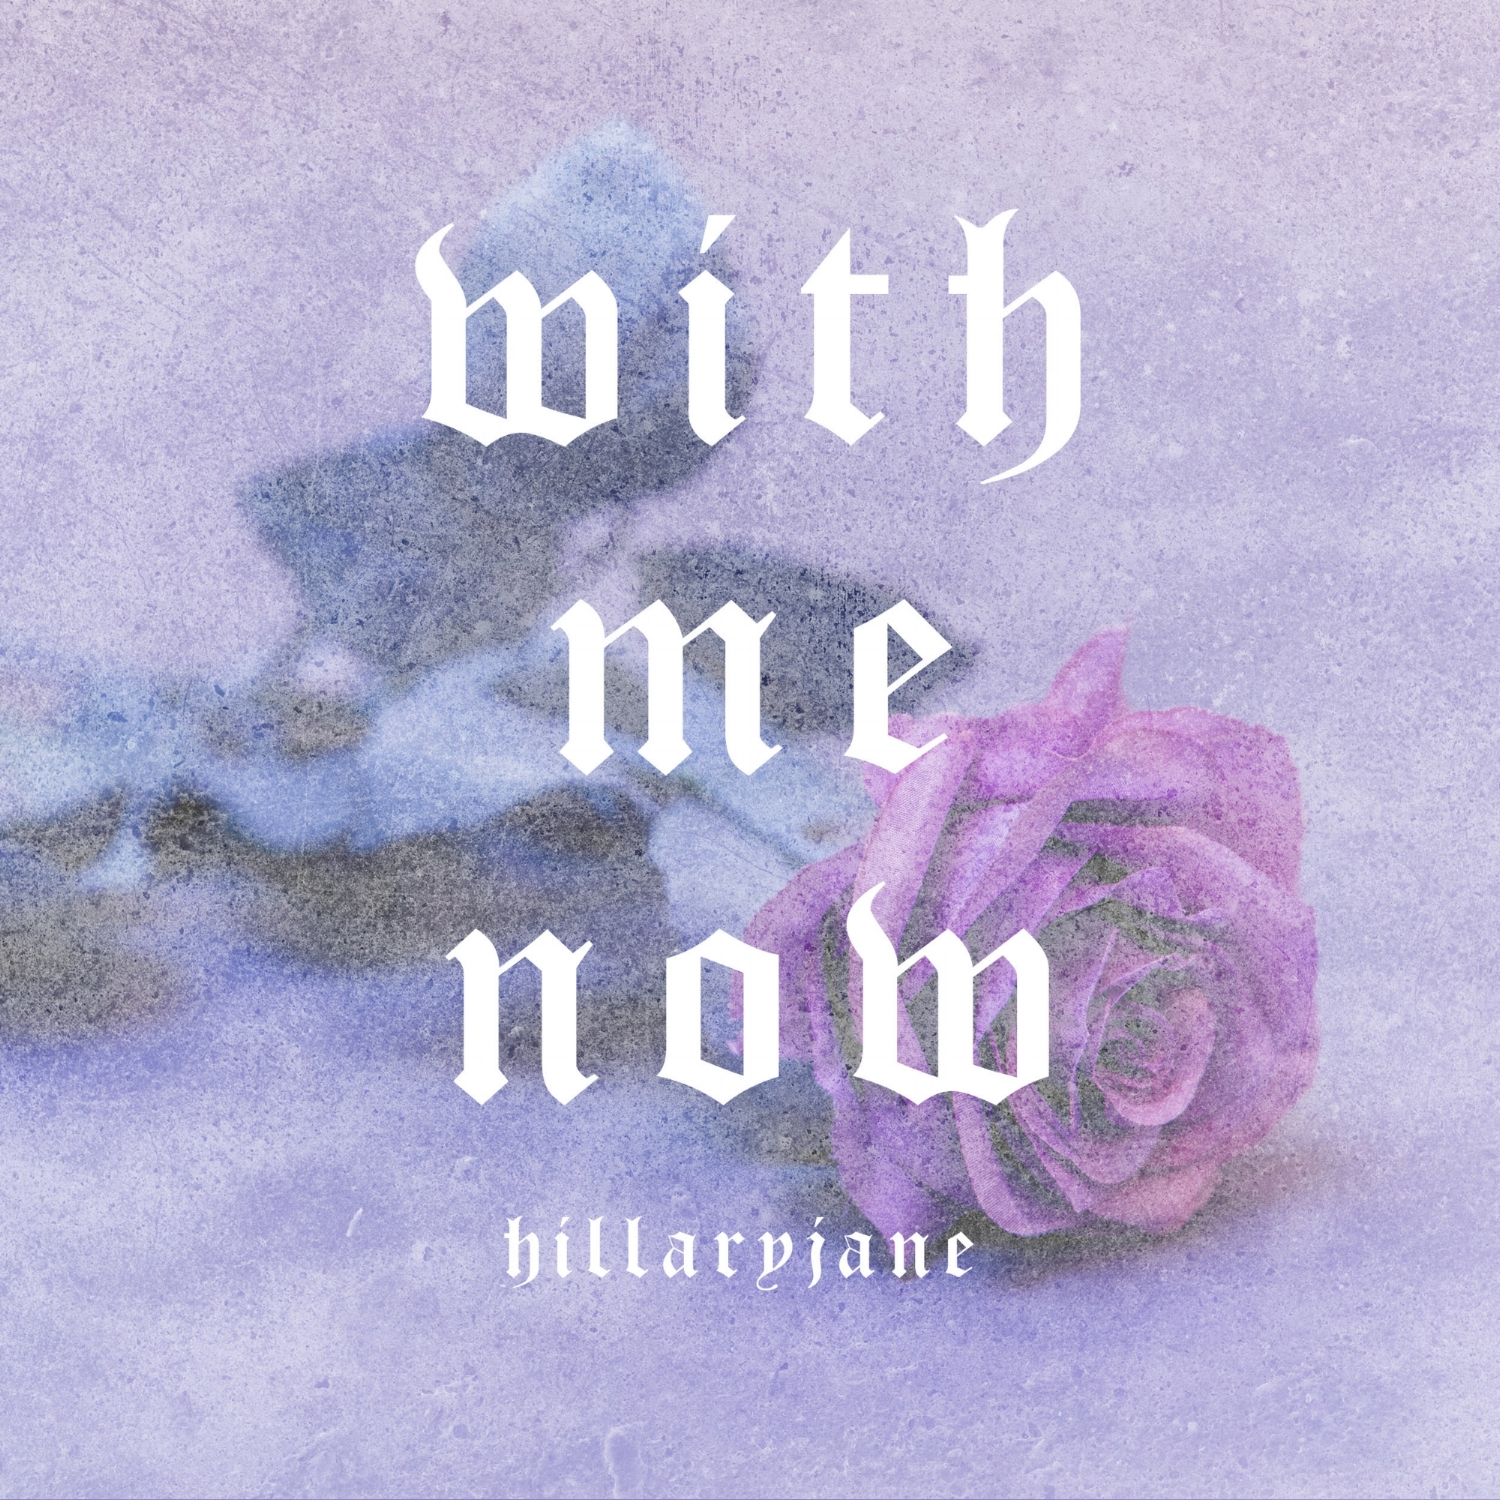 With Me Now is a song of hope for Christians everywhere. - 'With Me Now' is a deep and moving pop track that reminds us God is present even when the world is filled with pain and confusion. Written in 2017 on the day of the Las Vegas shooting, HillaryJane entered the studio with a heavy heart. Mourning not only the evil in Vegas but her friends and families' lives rocked by the floods in her hometown, Houston. With so much evil running rampant in the world from school shootings, injustice, and natural disasters, she wanted to remind God's people He is with us. Presence brings comfort, we know but must believe that God is with and for his people. This is one of the greatest joys of heaven. 'With Me Now' is sure to encourage and remind Believers of the closeness of God